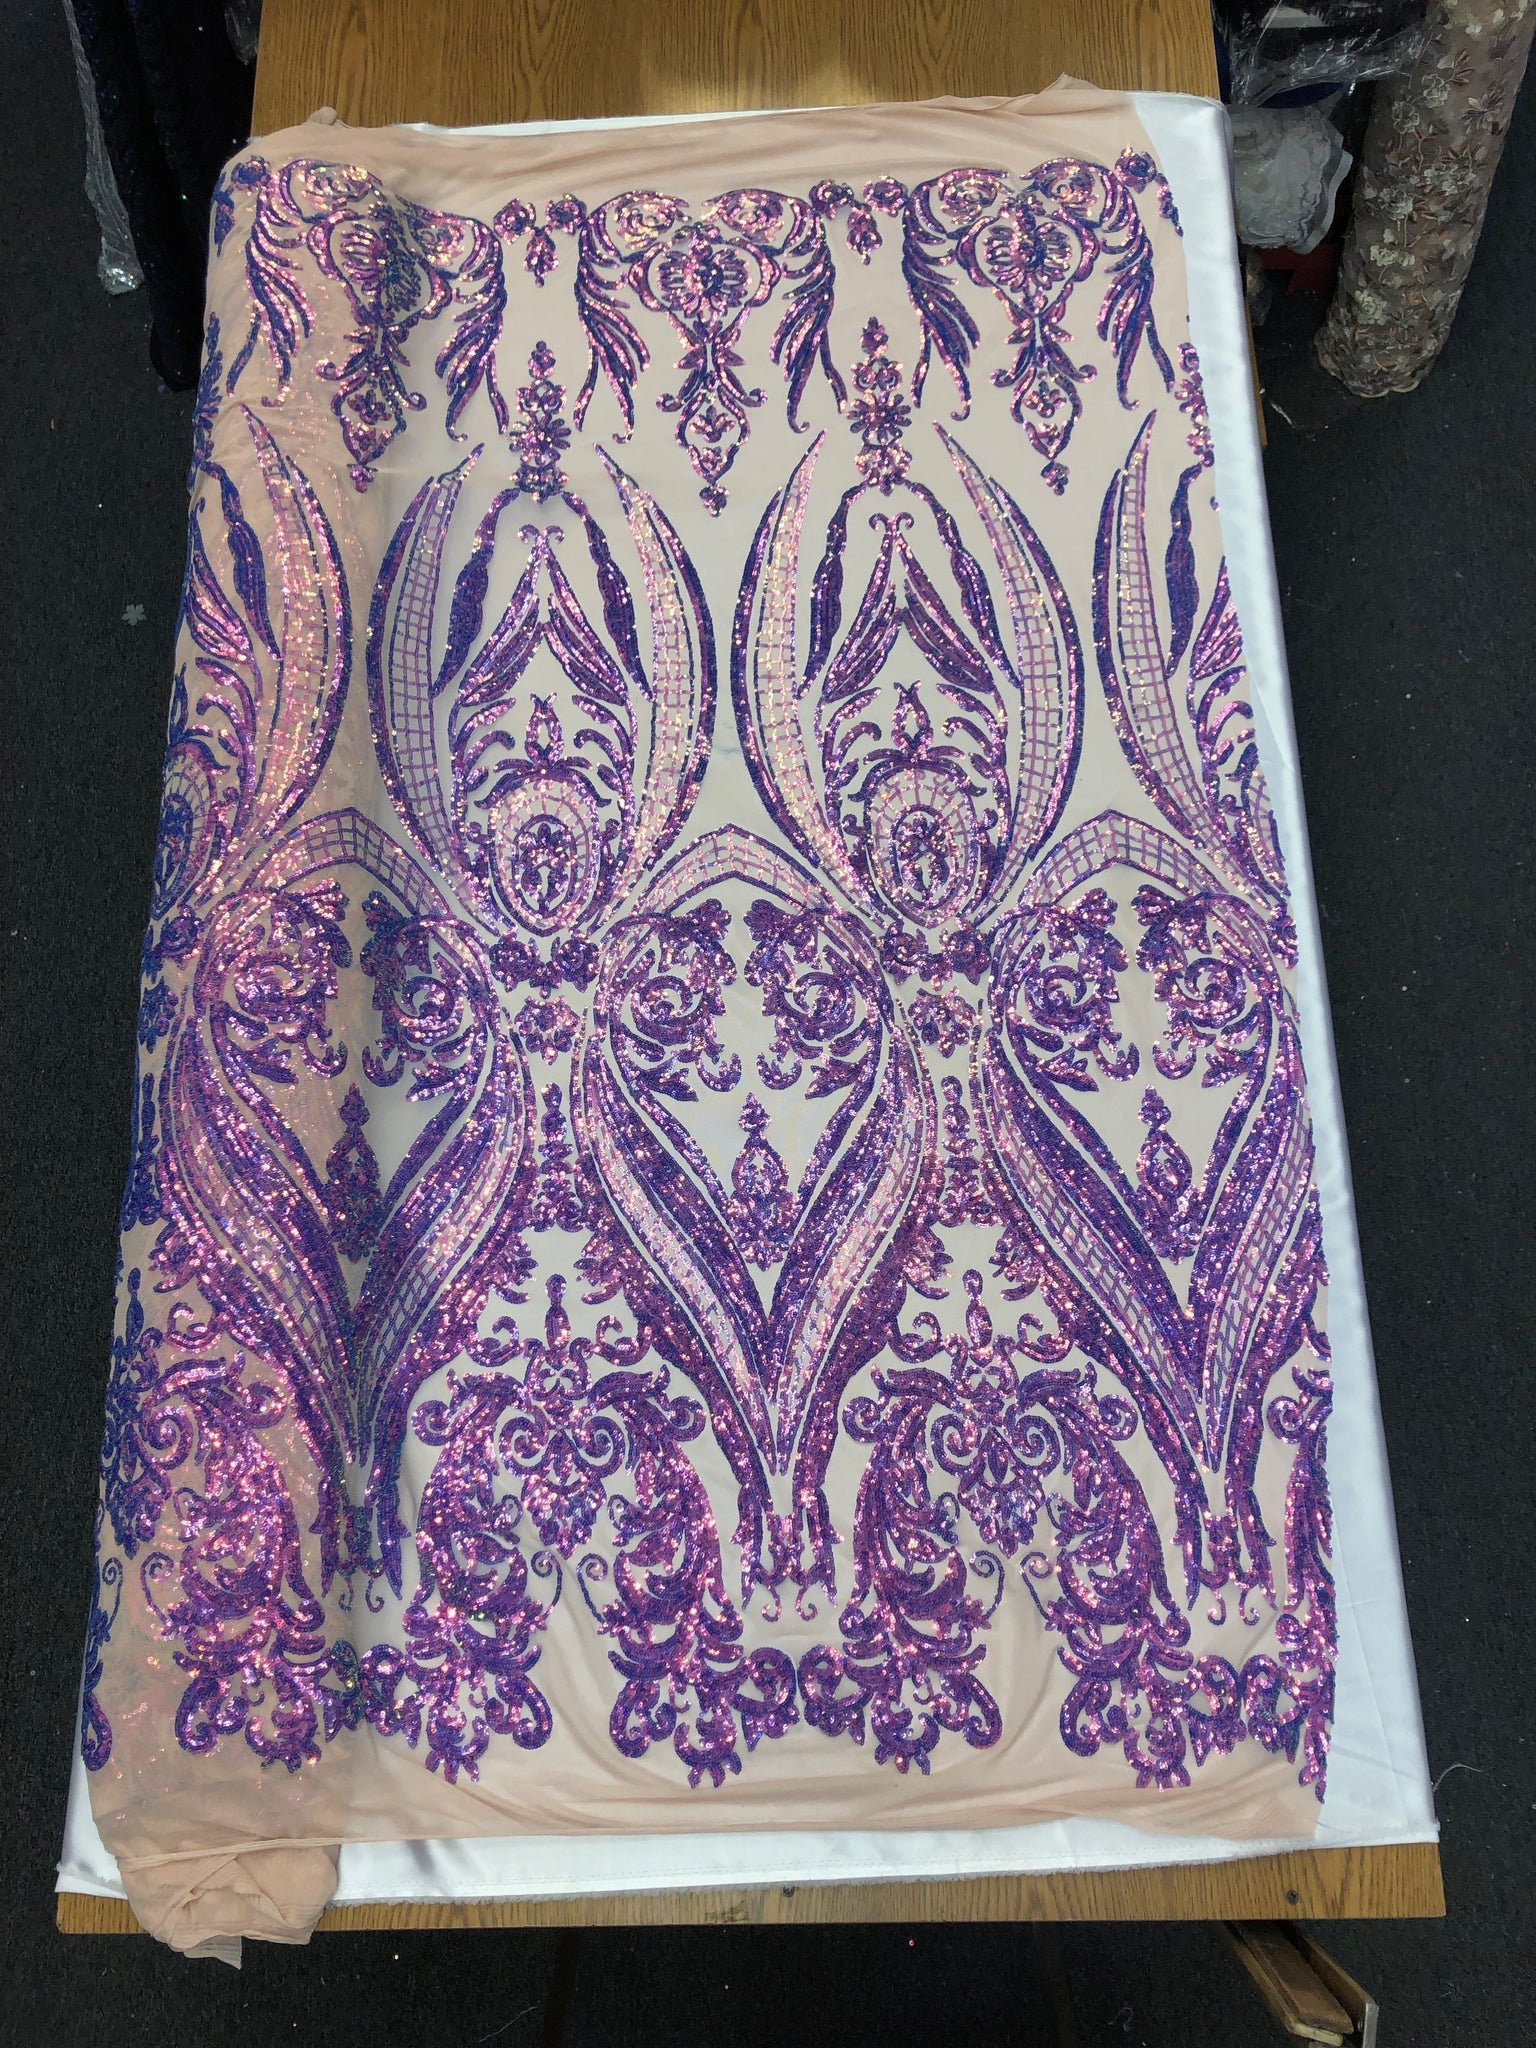 5 yards heavy embroidered lace fabric in multi color pink